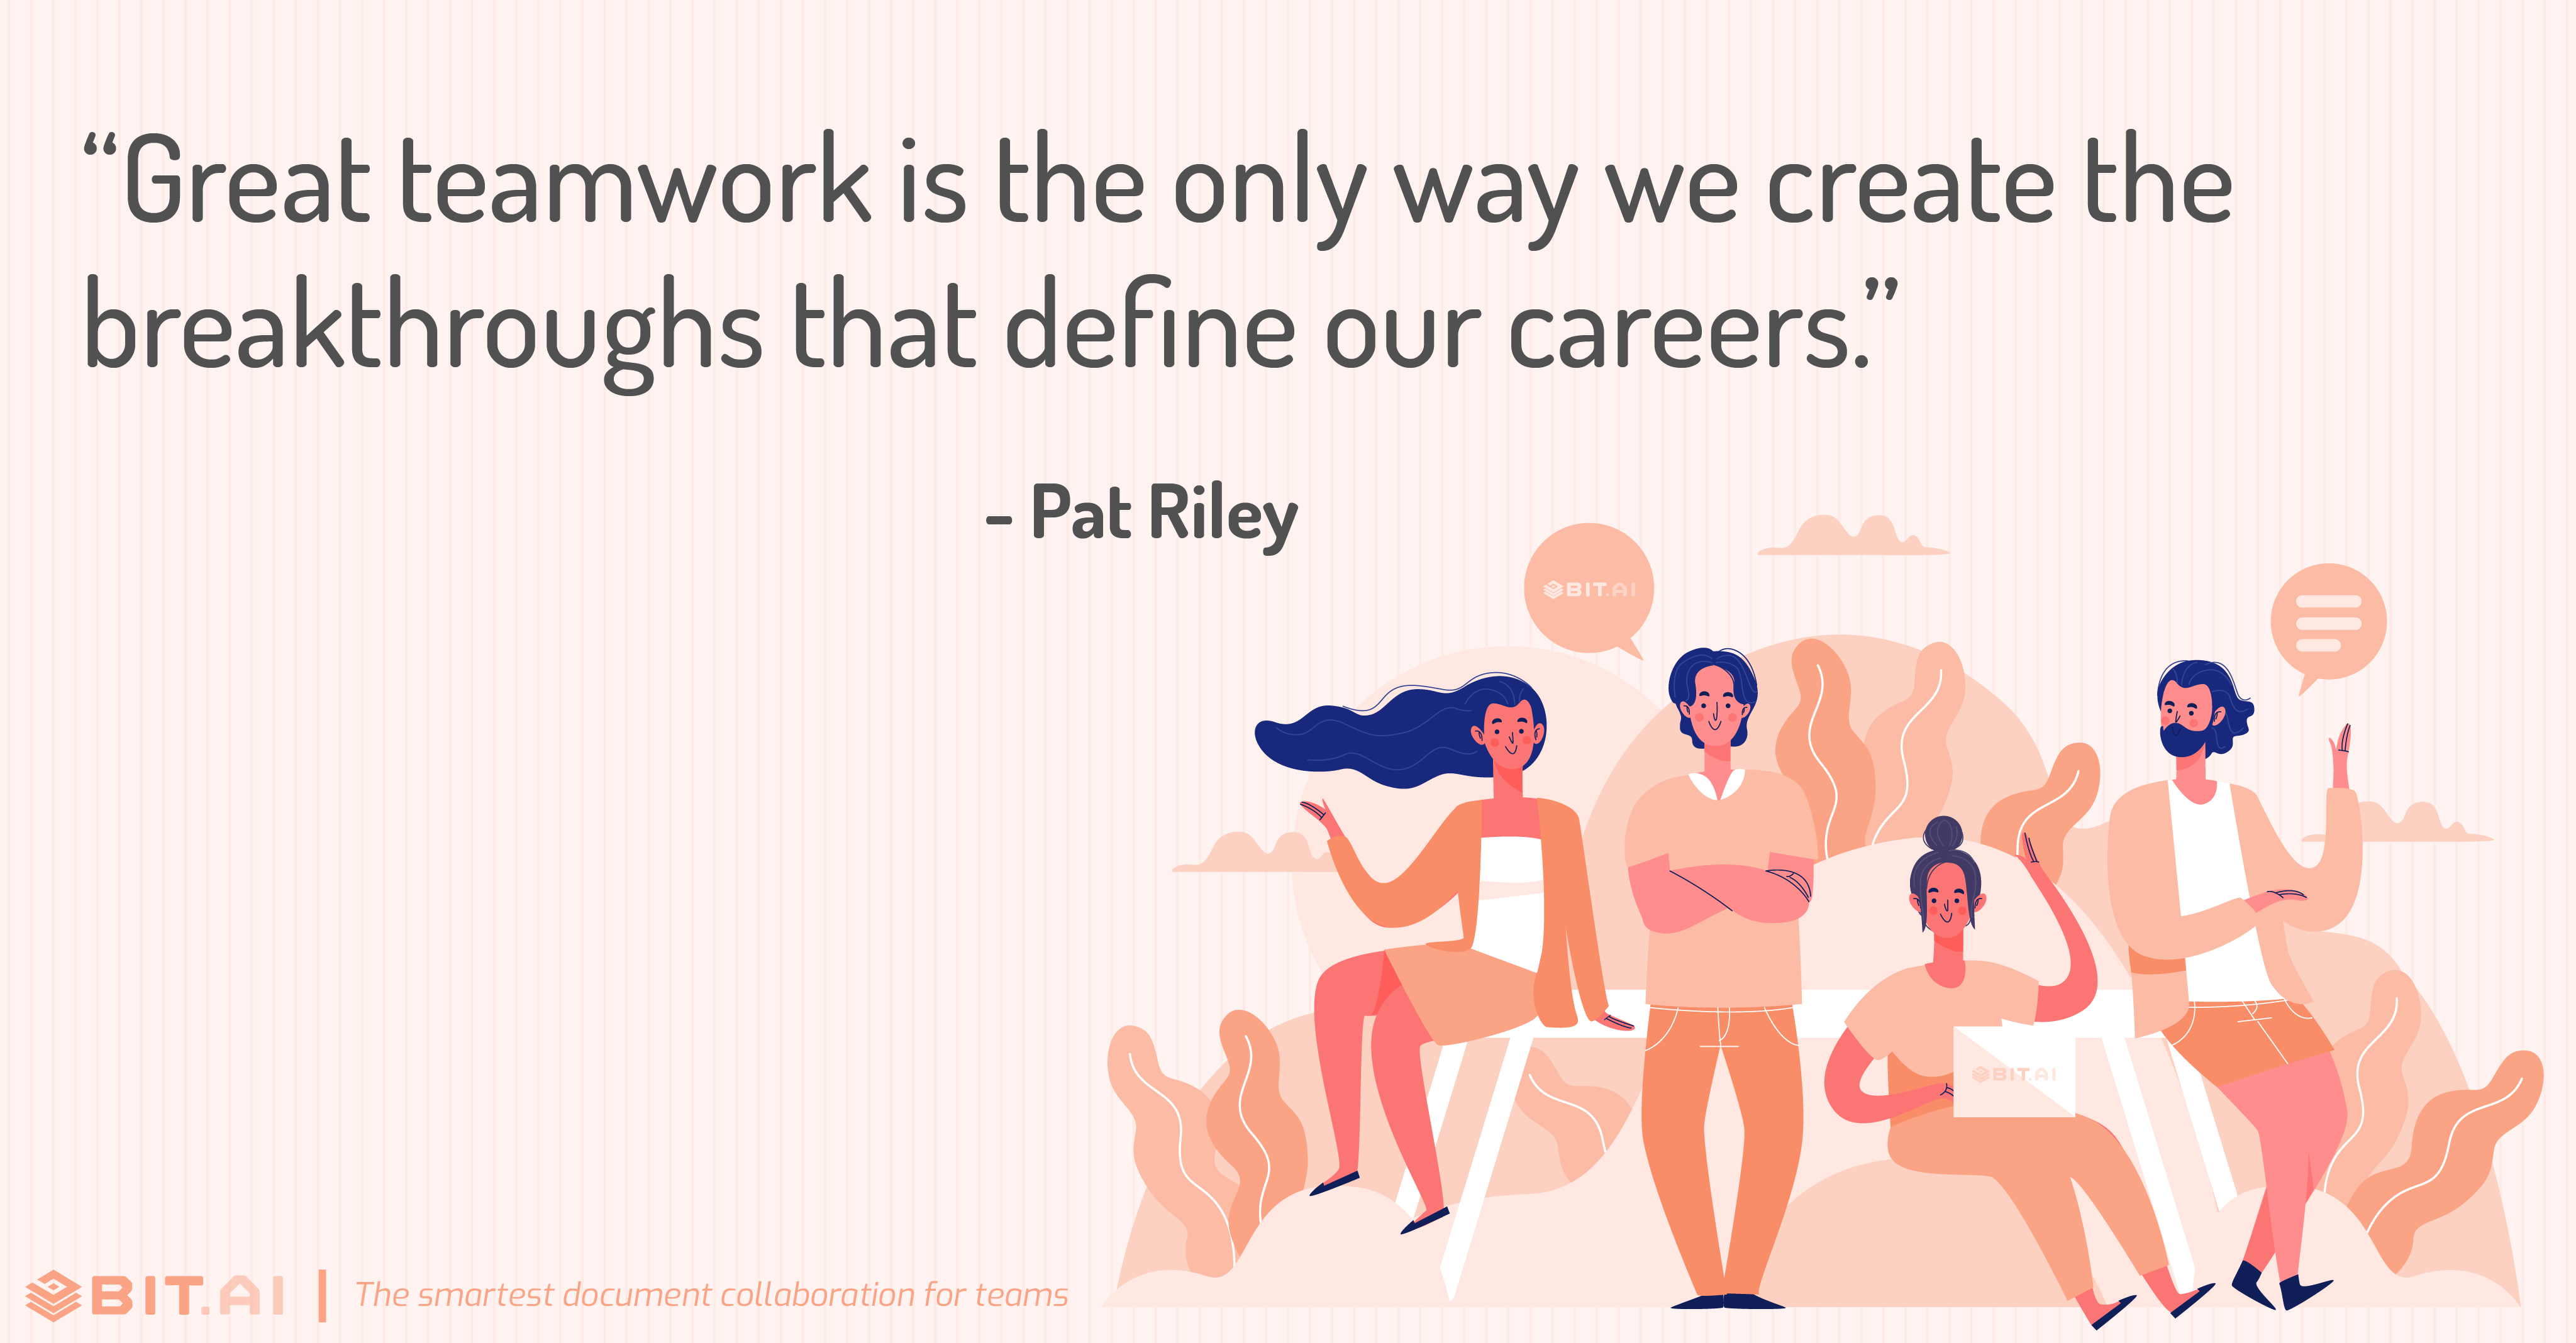 """Great teamwork is the only way we create the breakthroughs that define our careers."" - Pat Riley"